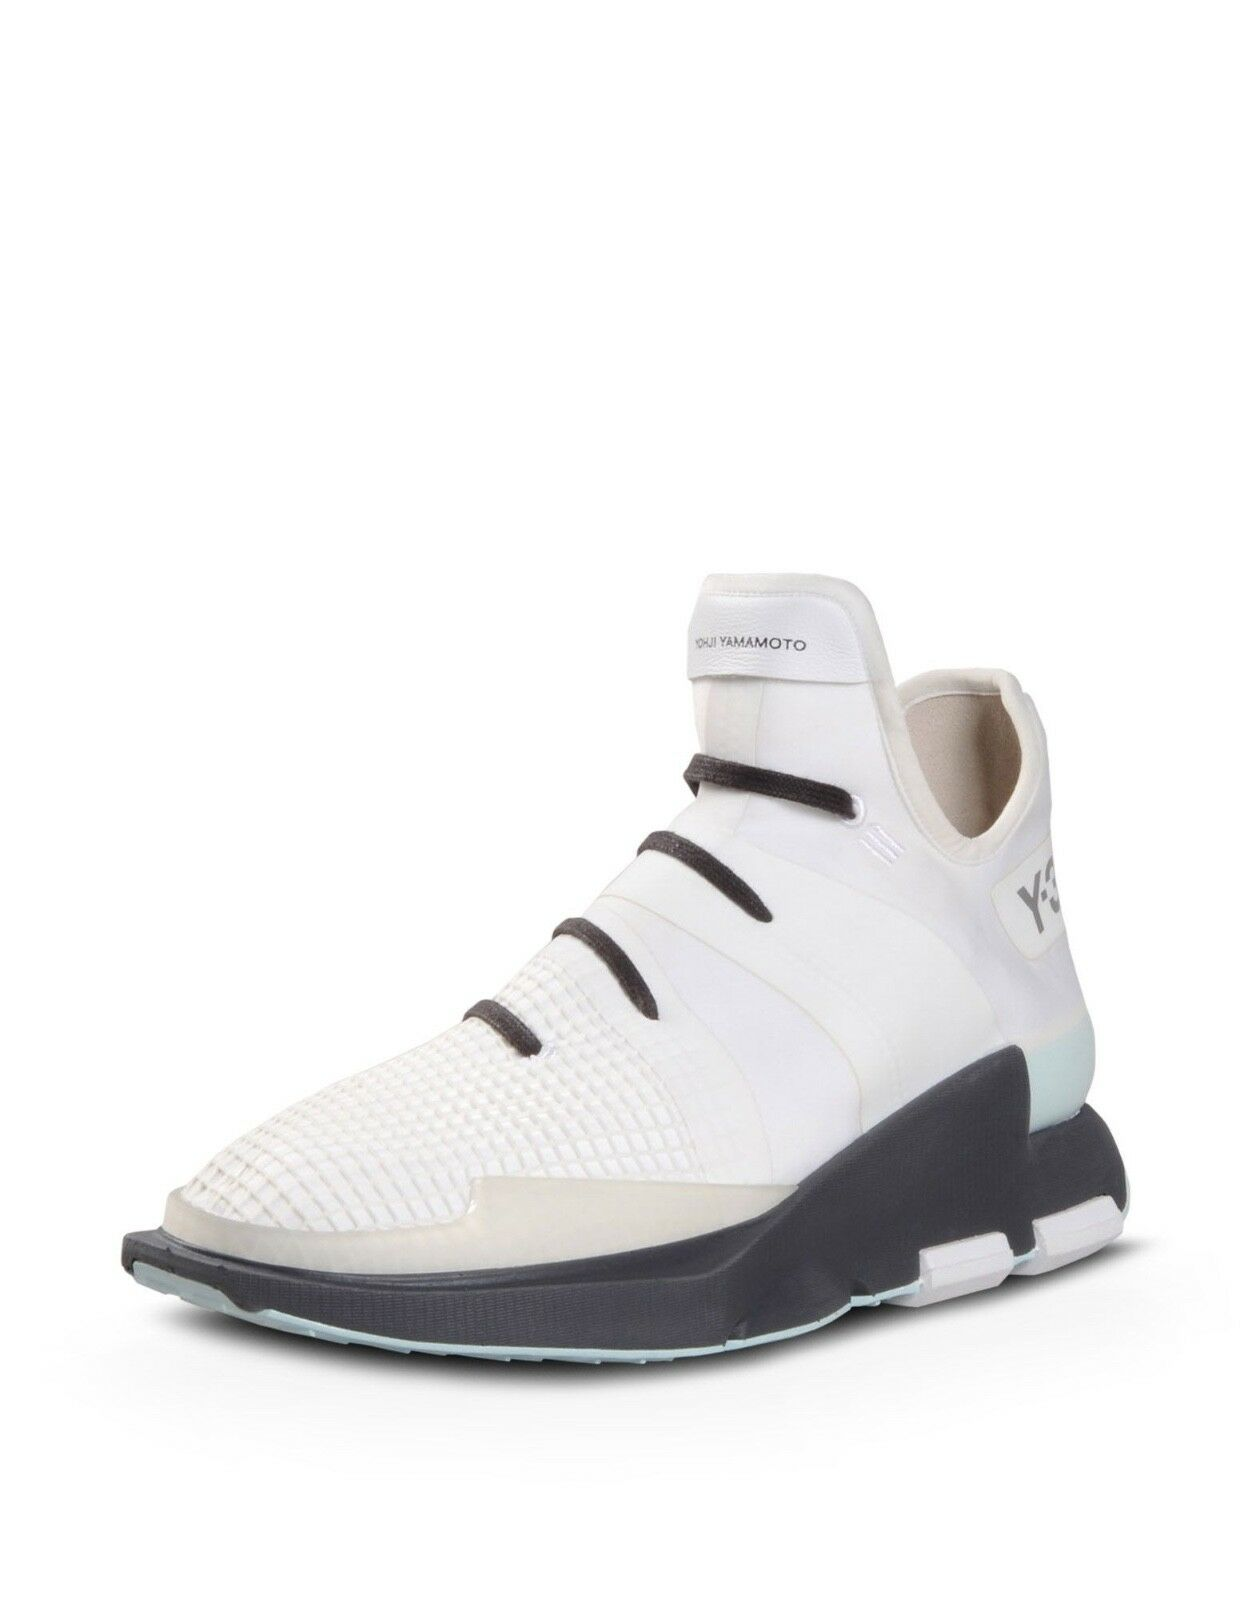 sneakers for cheap 1d4e8 5e068 Sneakers Fashion Athletic Men's Low Noci Y-3 New Brand ...